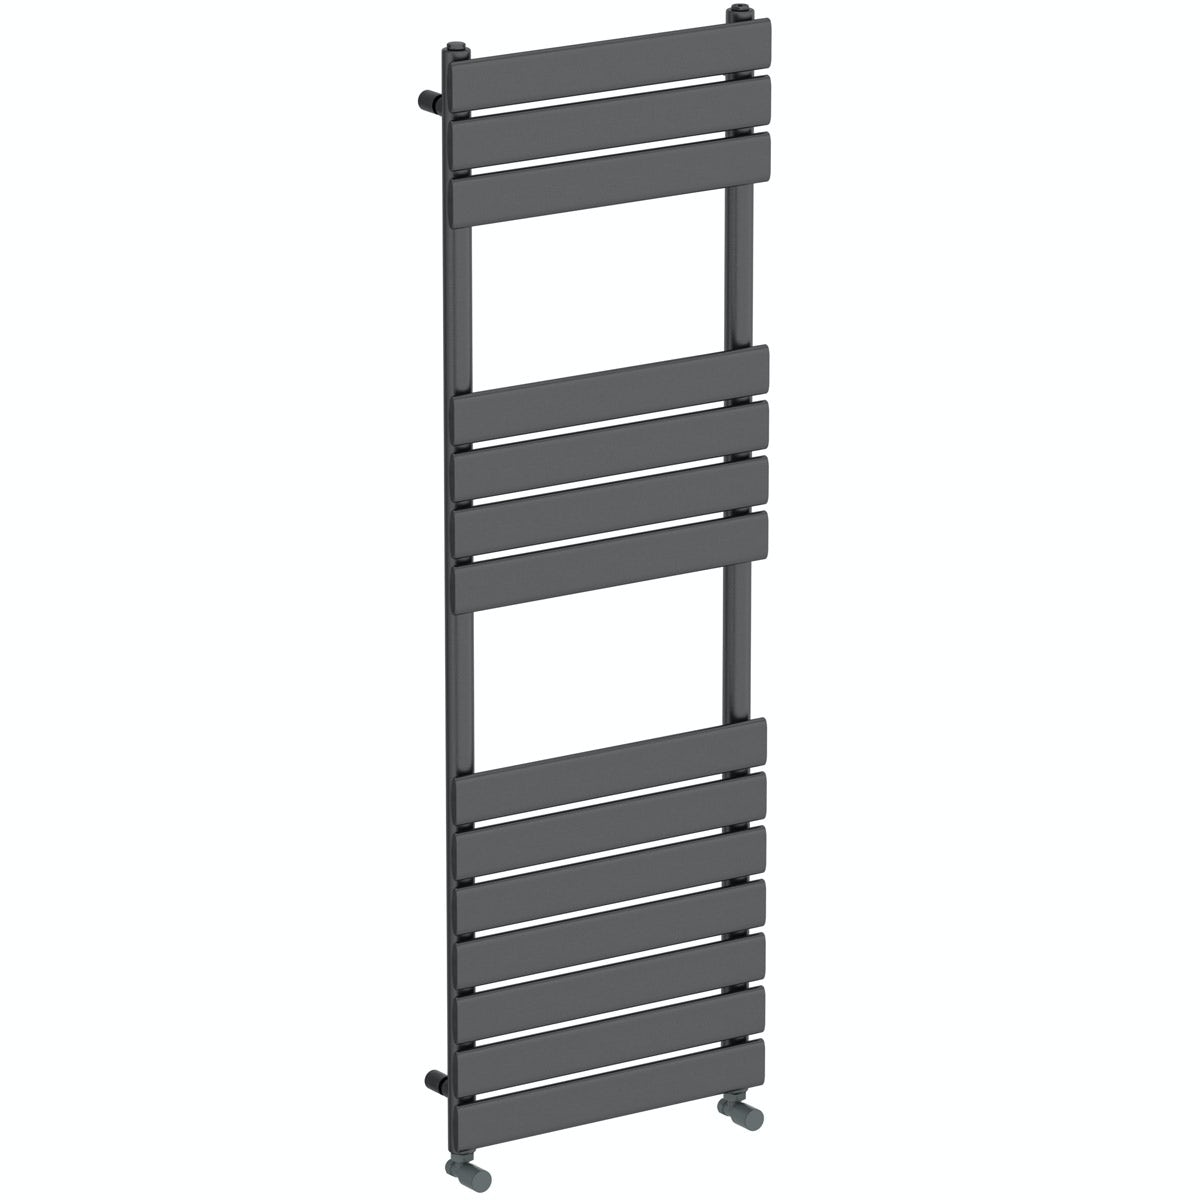 Orchard Wharfe anthracite heated towel rail 1500 x 502